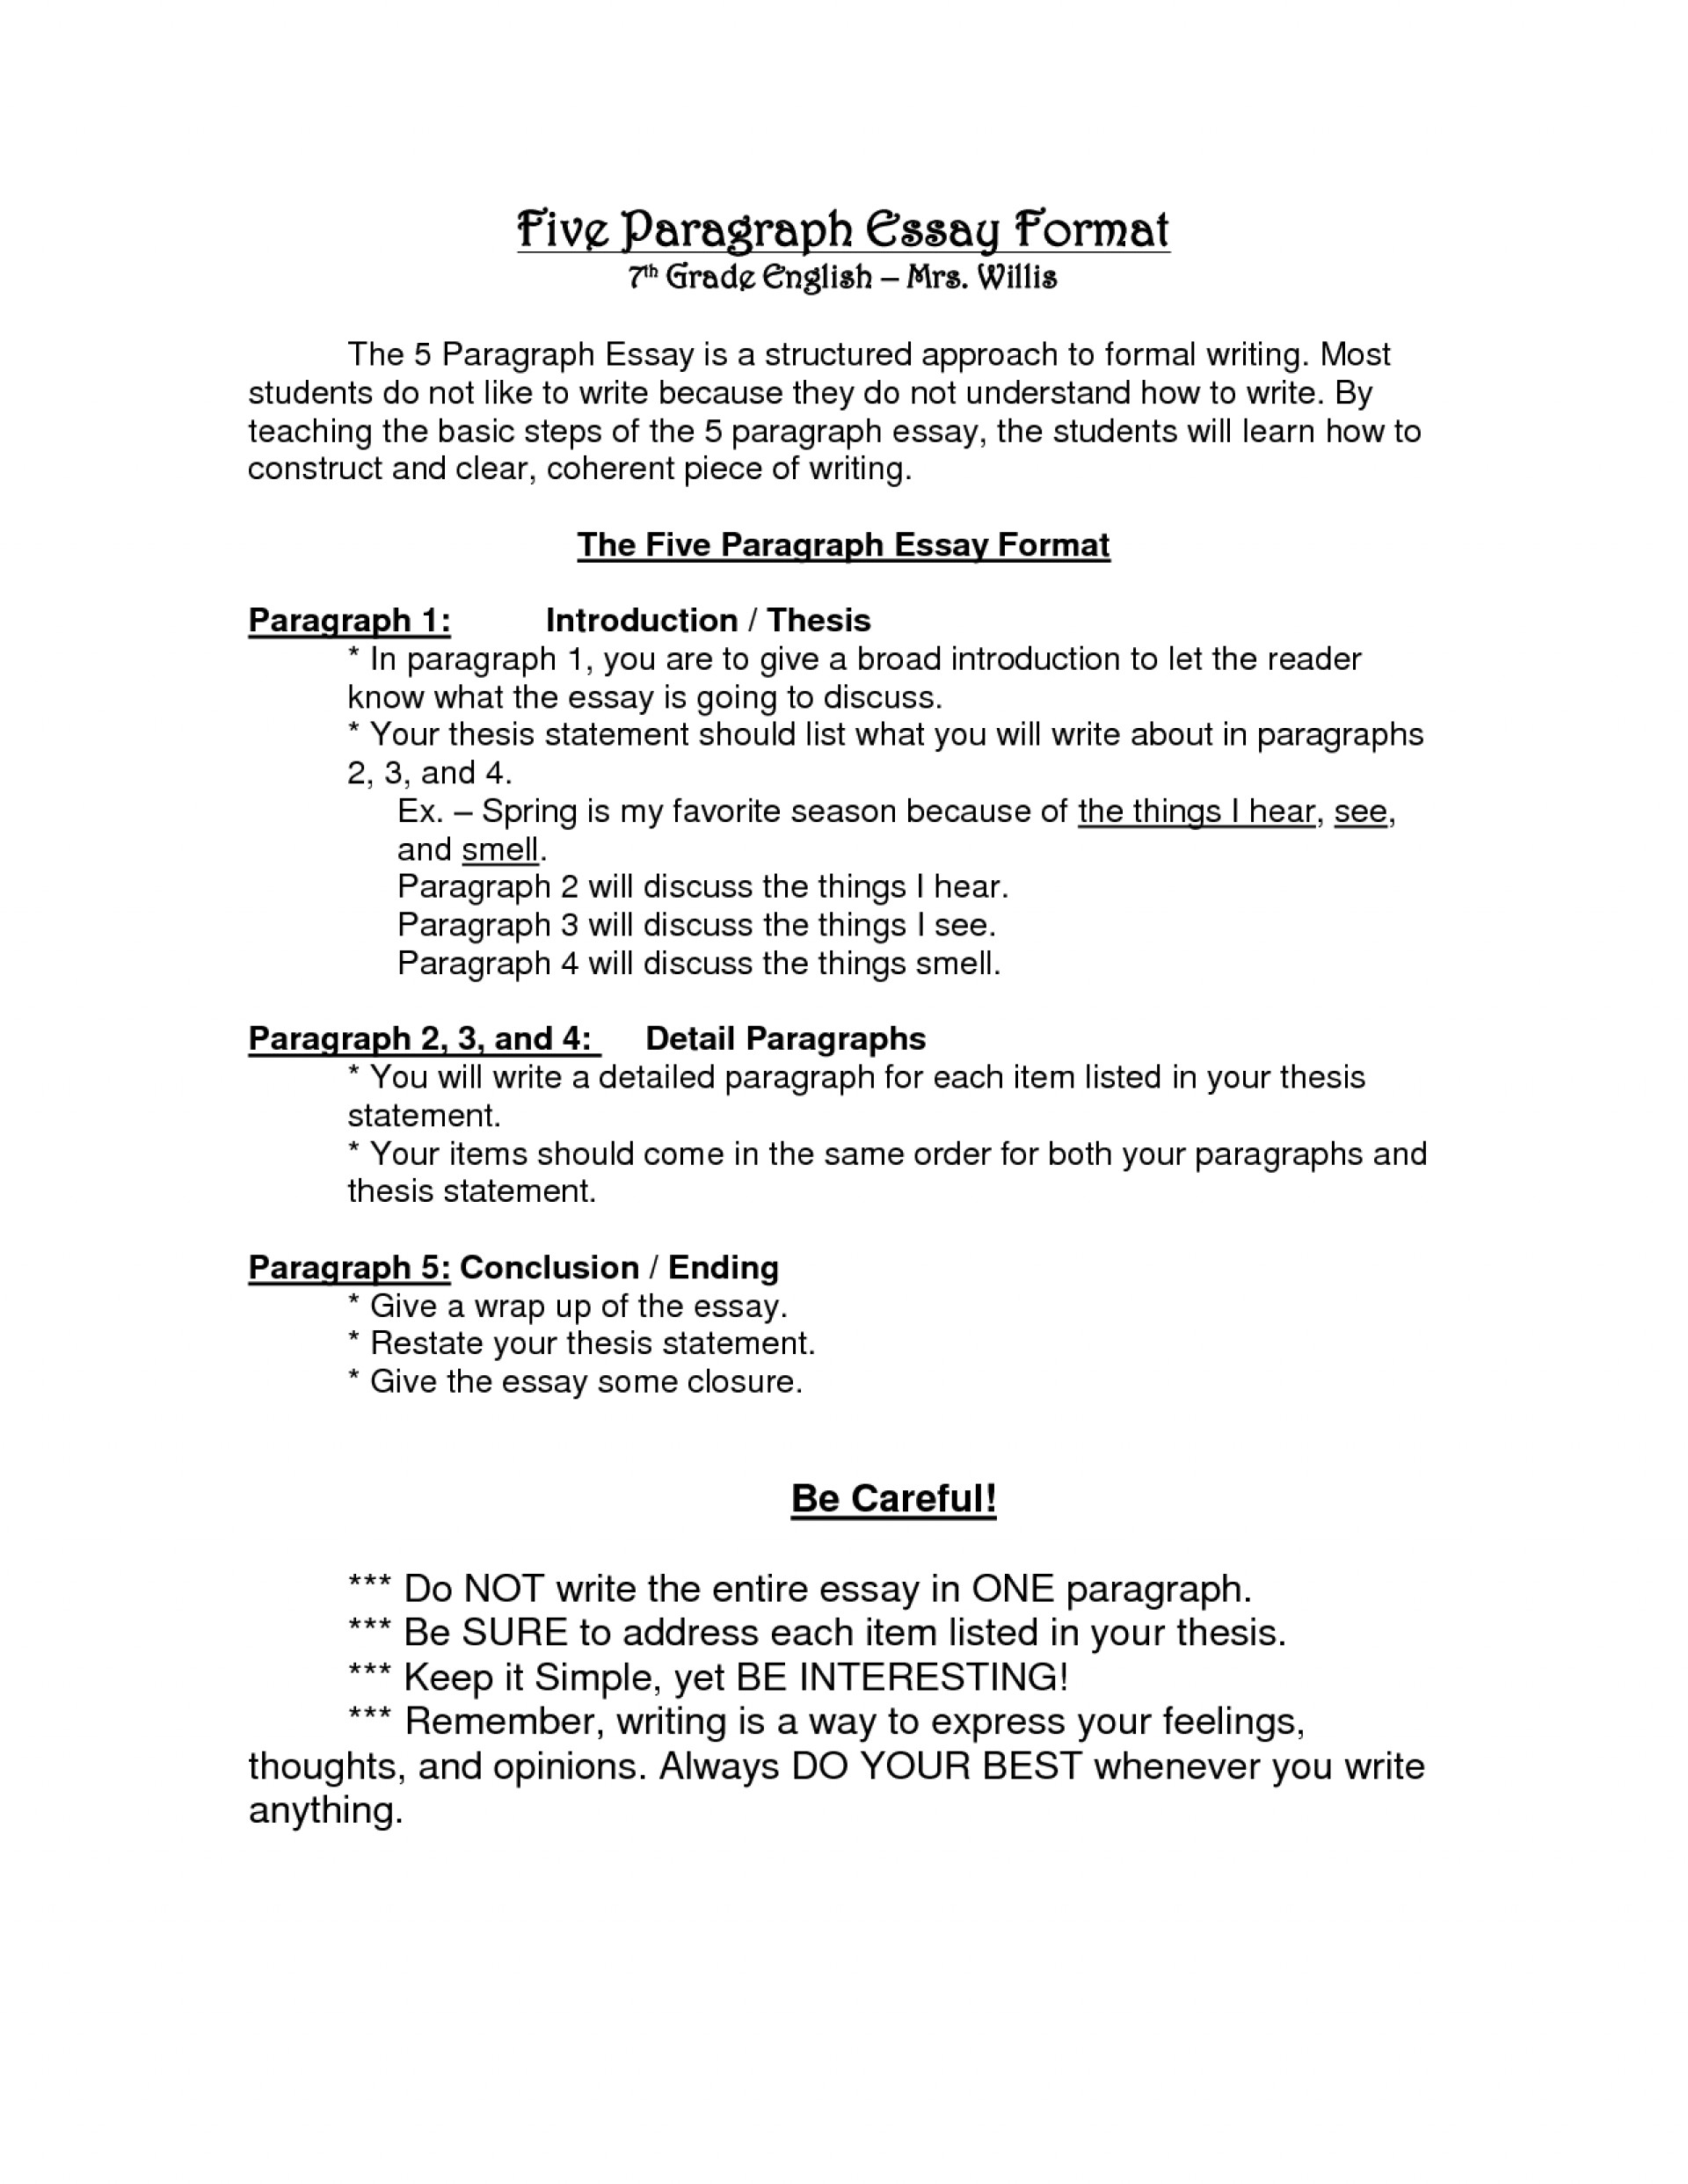 025 Paragraph Essay Outline Template Formats 96536 Fearsome 5 Pdf Persuasive Word 1920